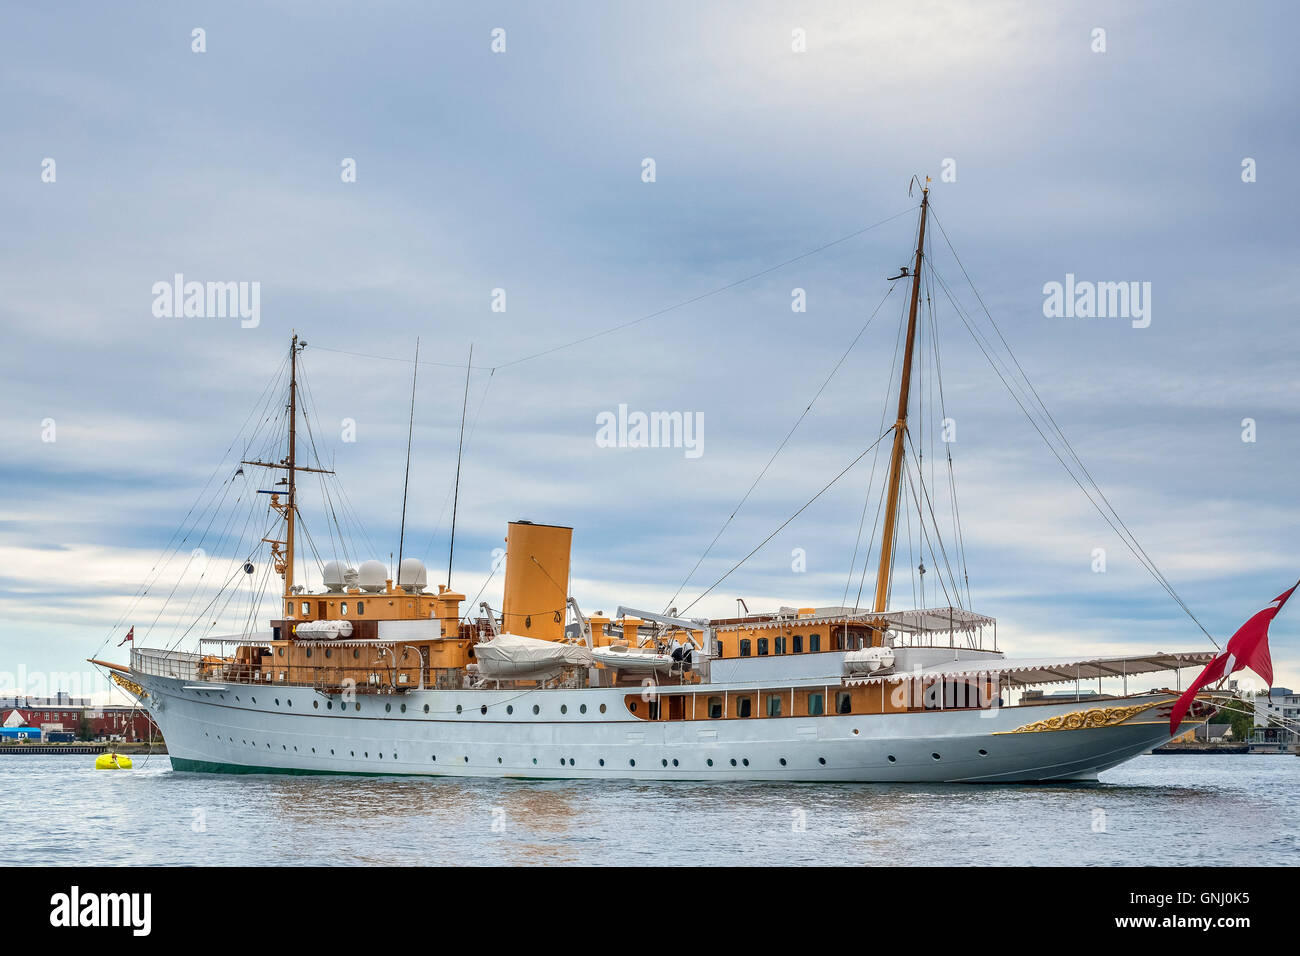 The Royal Yacht Dannebrog Copenhagen Denmark Stock Photo